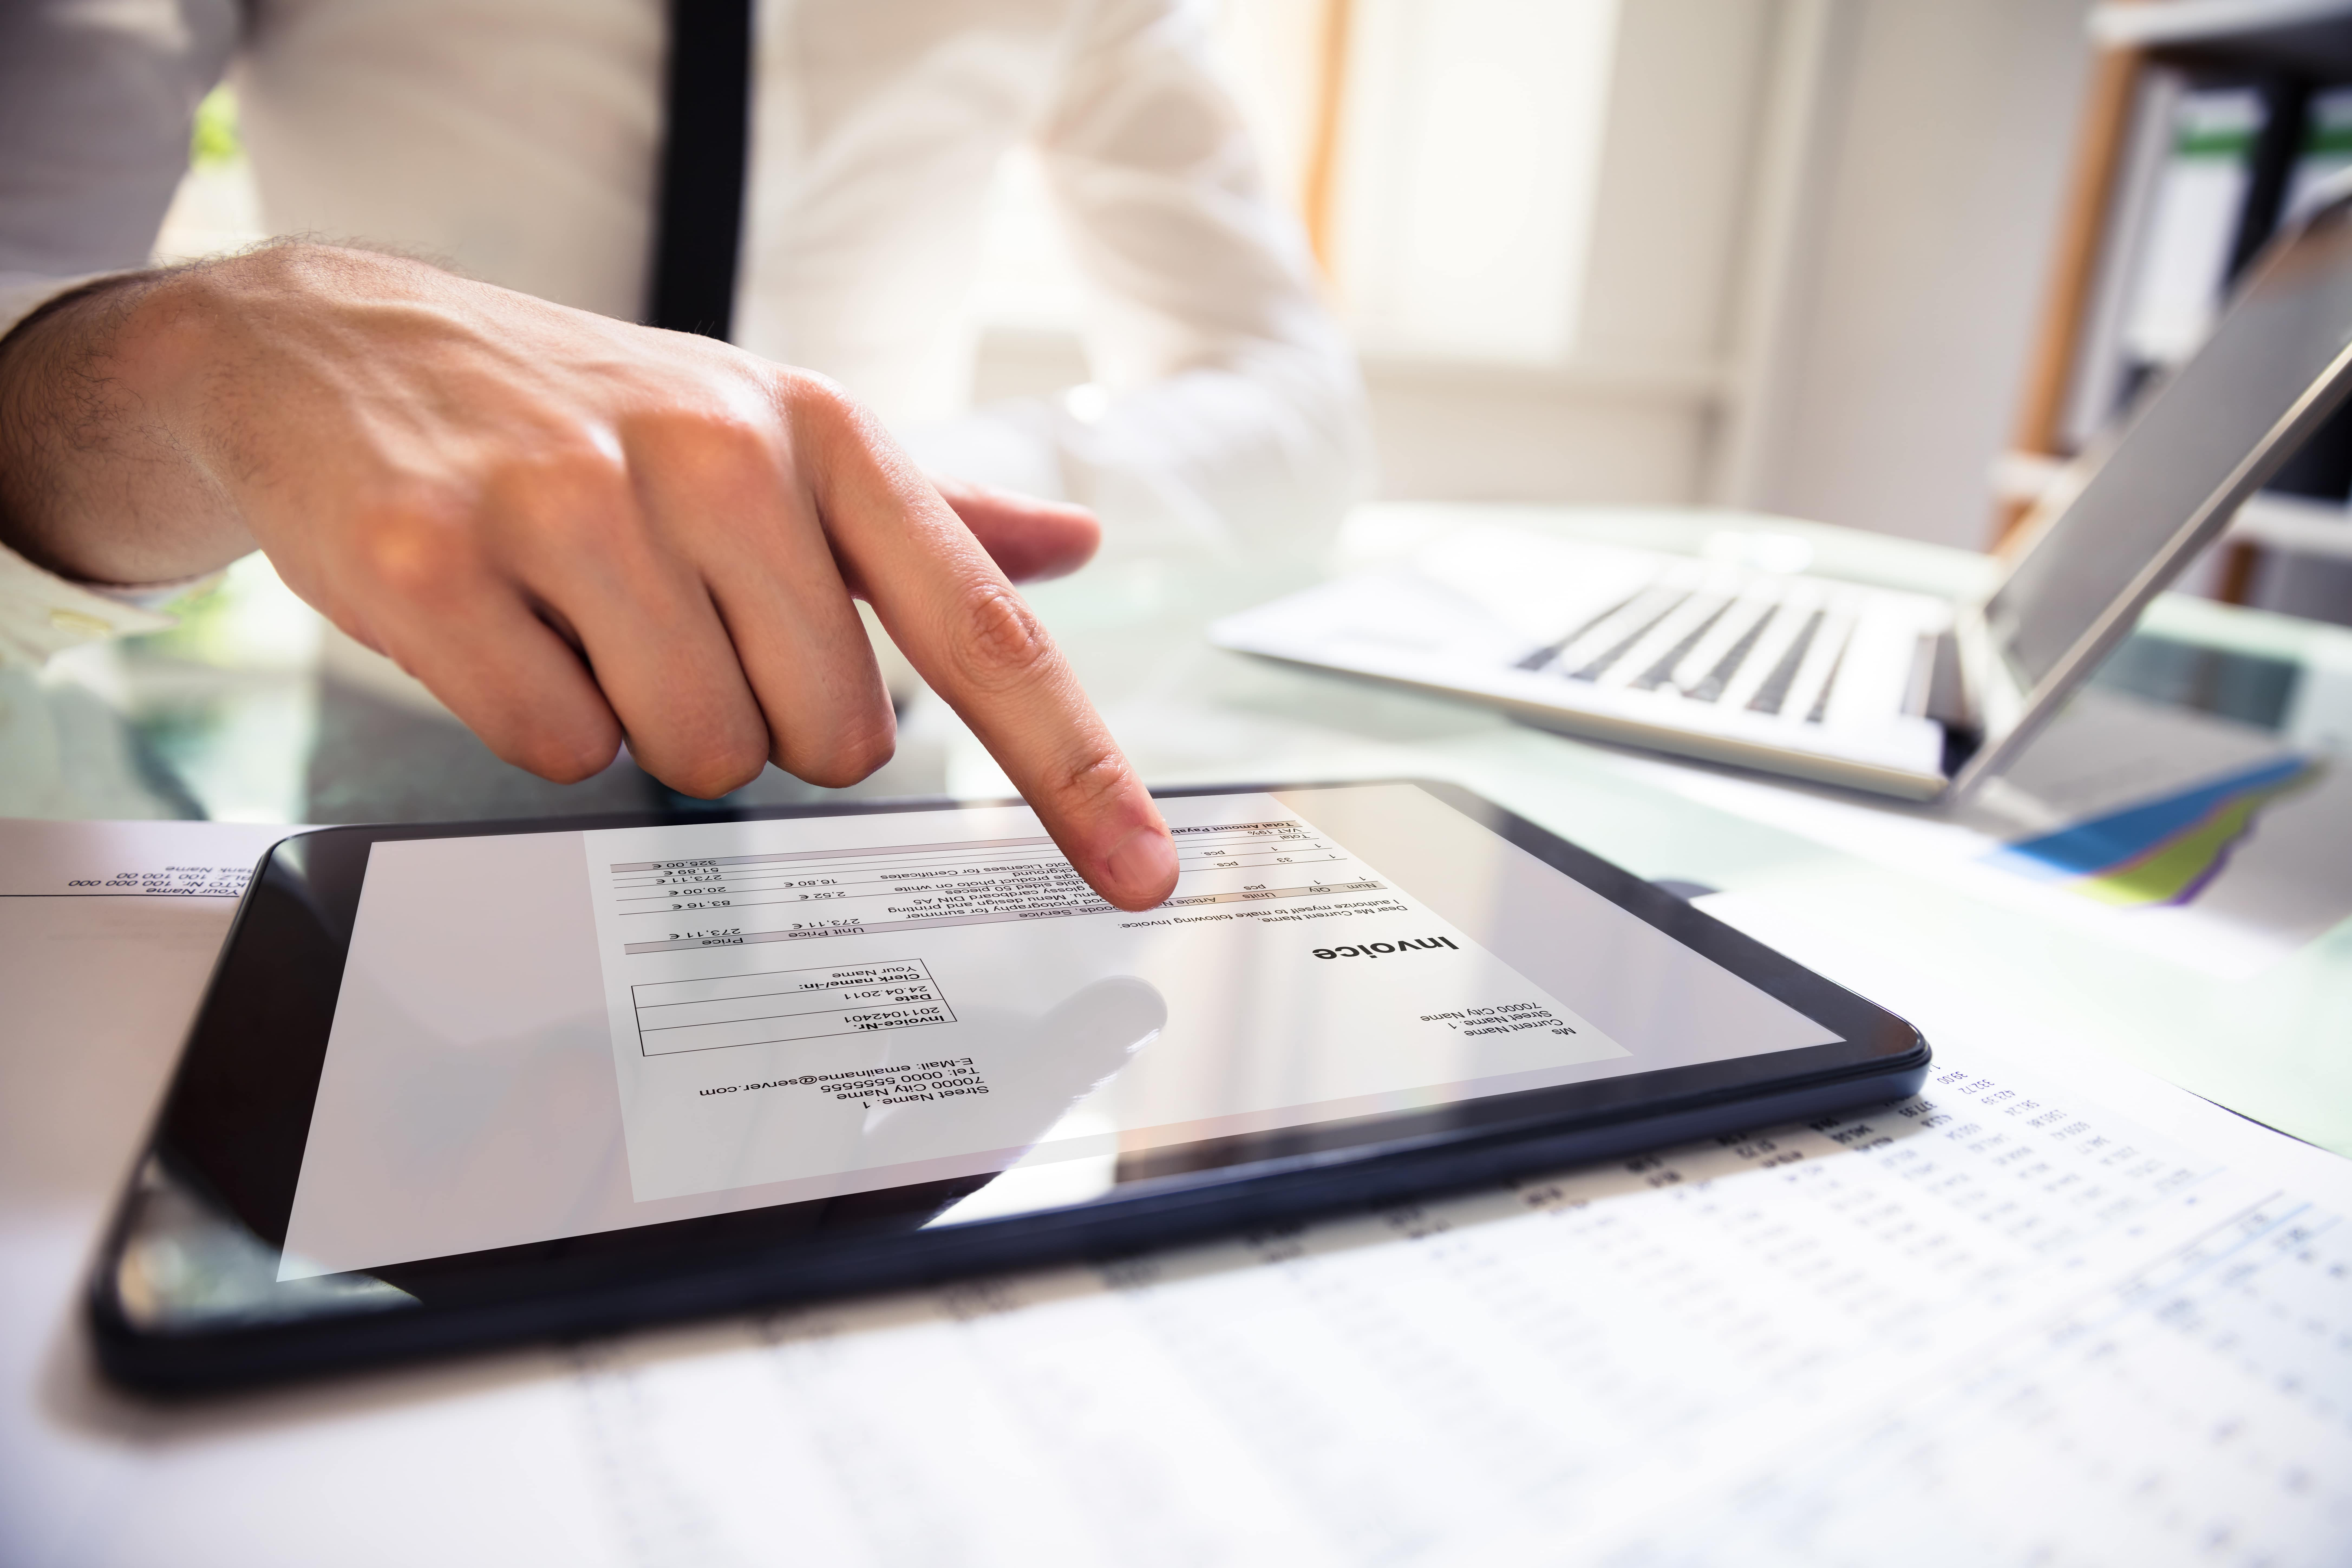 A businessman looking at an electronic invoice on his tablet at a wooden desk with a tablet and computer on it, his face is not visible